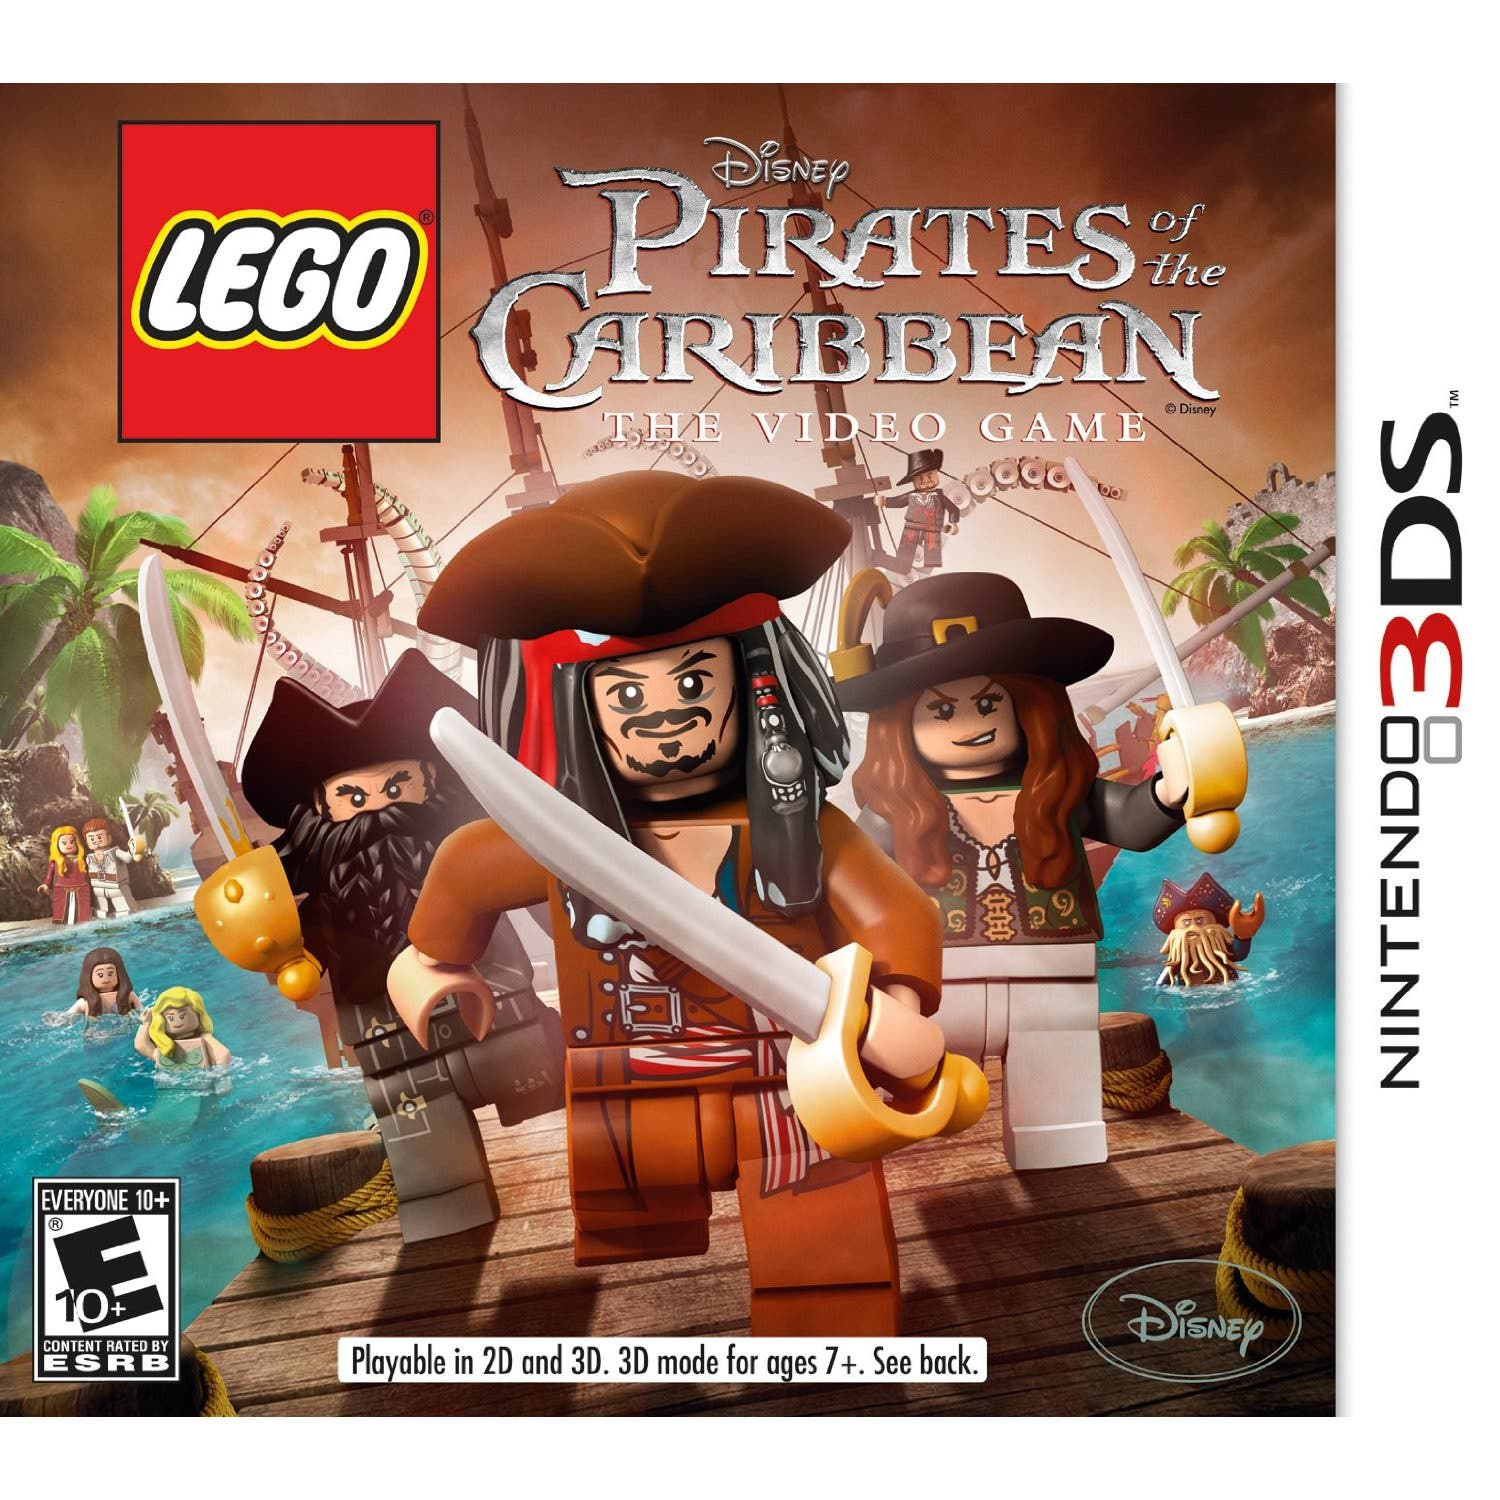 b77f475d03_LEGO_Pirates_of_the_Caribbean_cover